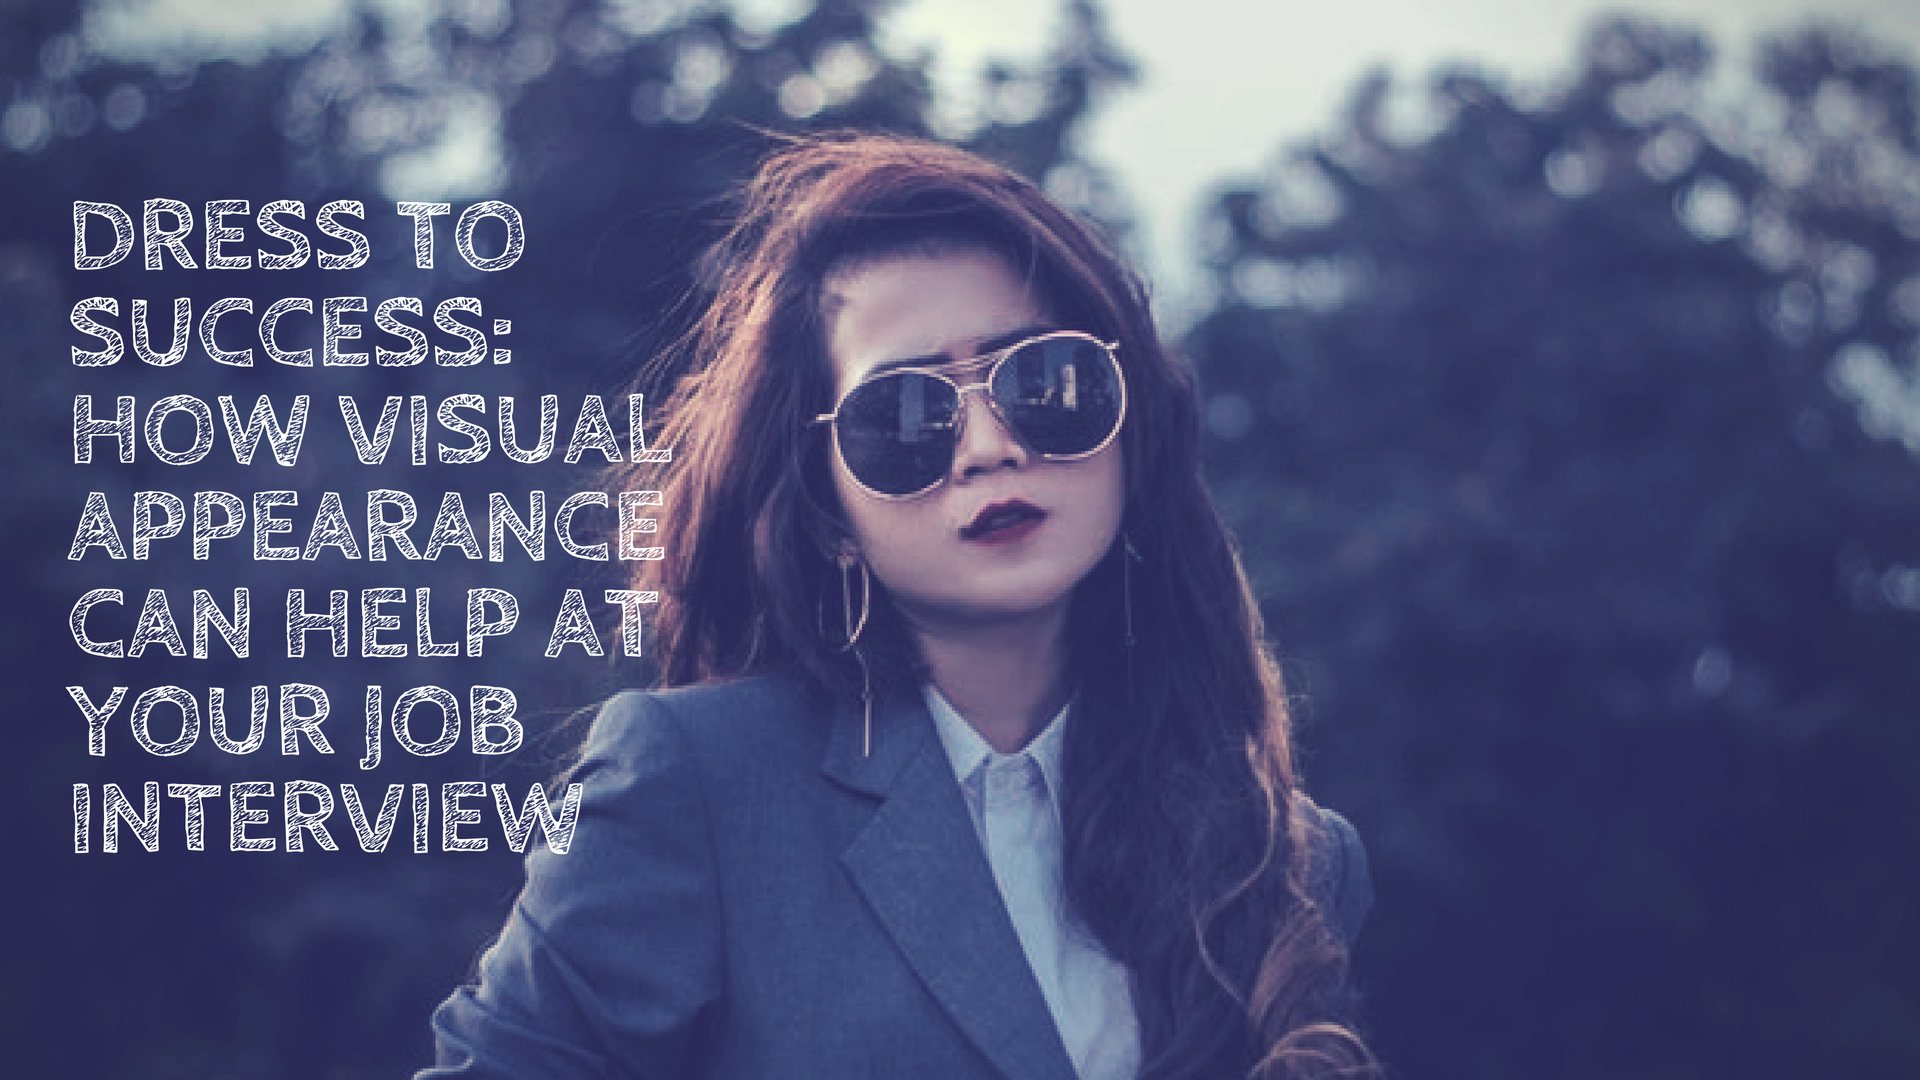 How visual appearance can help at your job interview, Girls.